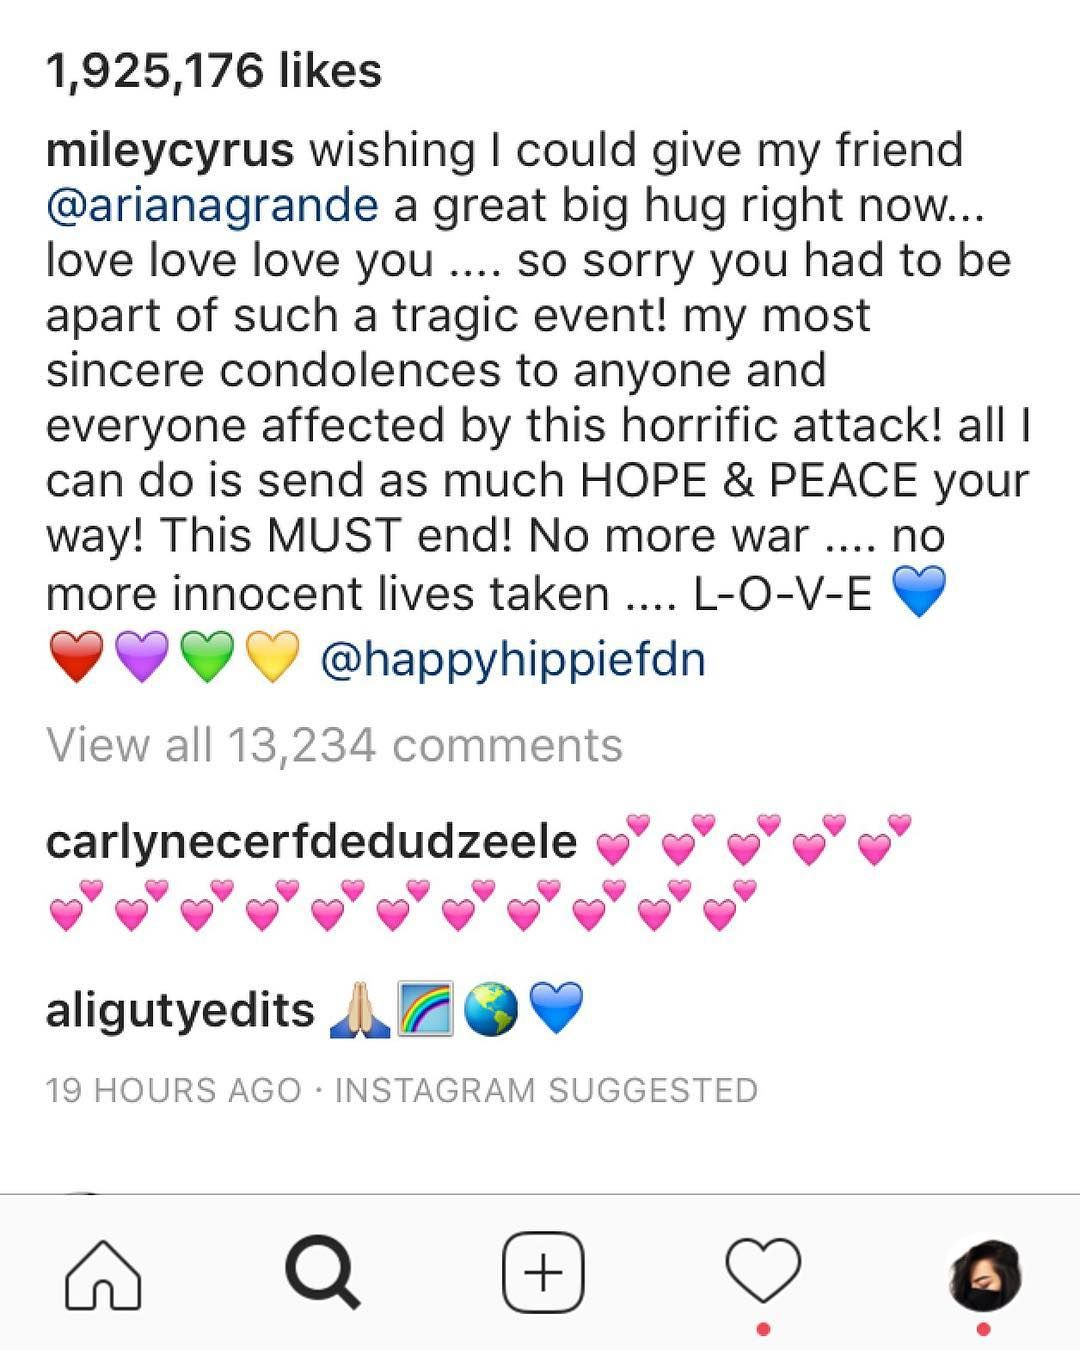 @mileycyrus towards @arianagrande regarding the incident after her concert in Manchester. #news #newpost #celebrity #arianagrande #mileycyrus http://tipsrazzi.com/ipost/1521353087604072585/?code=BUc7pKclaCJ